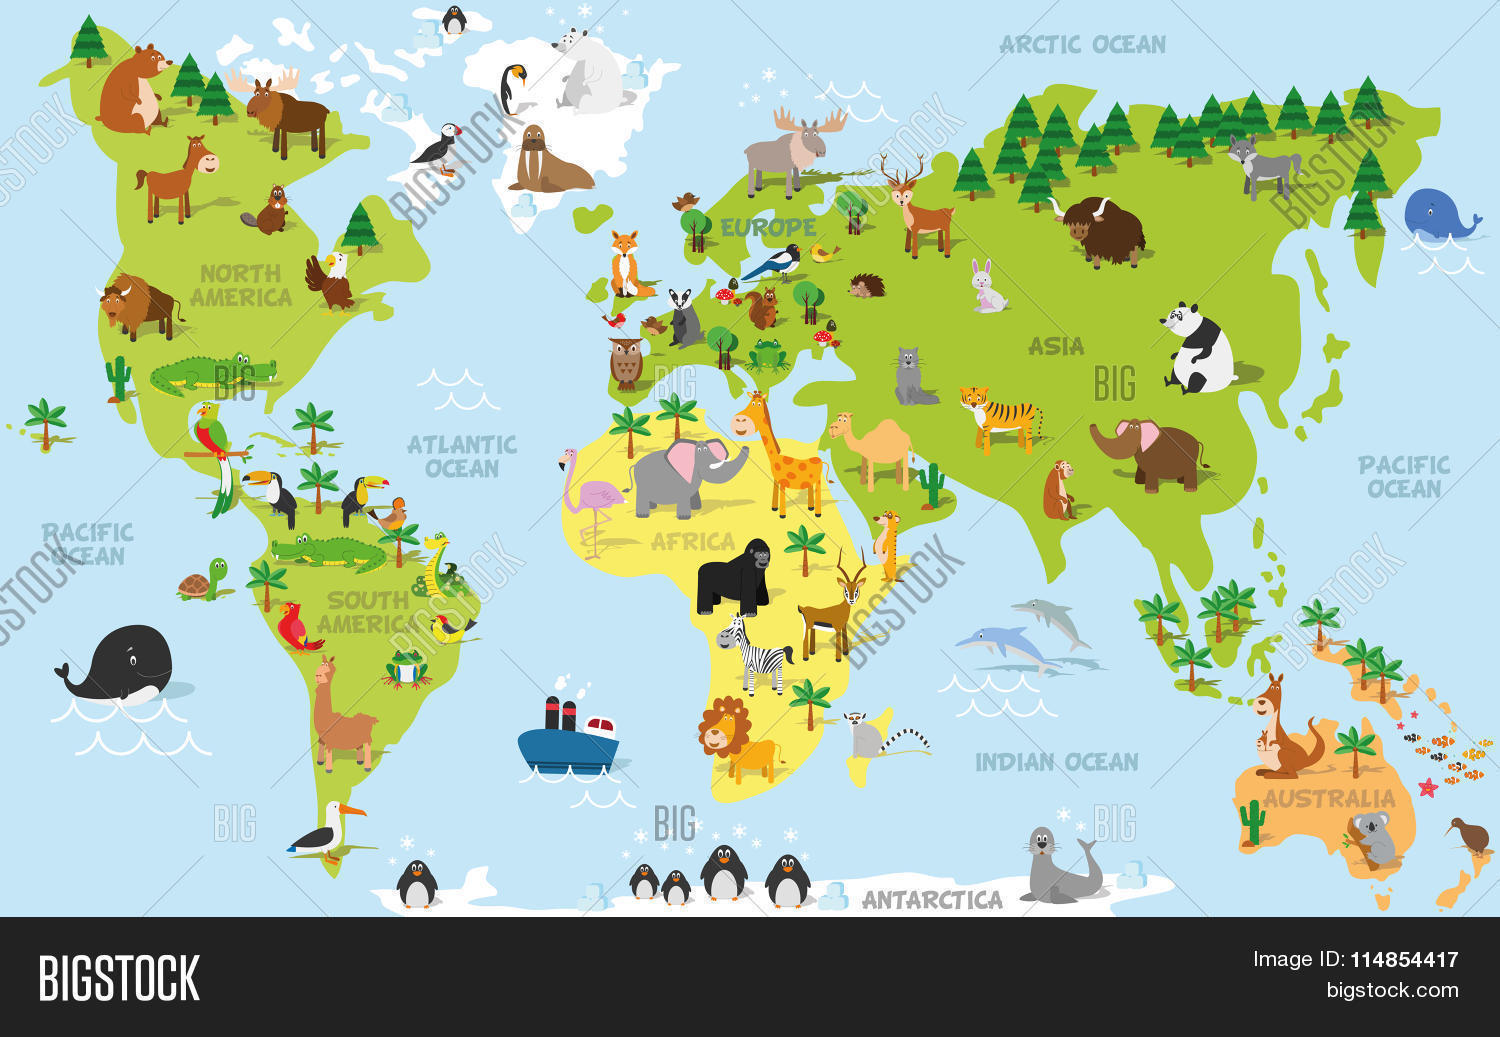 Continents and ocean map crankshaft location funny cartoon world map vector photo bigstock 114854417 stock vector funny cartoon world map with traditional animals of all the continents and oceans gumiabroncs Image collections